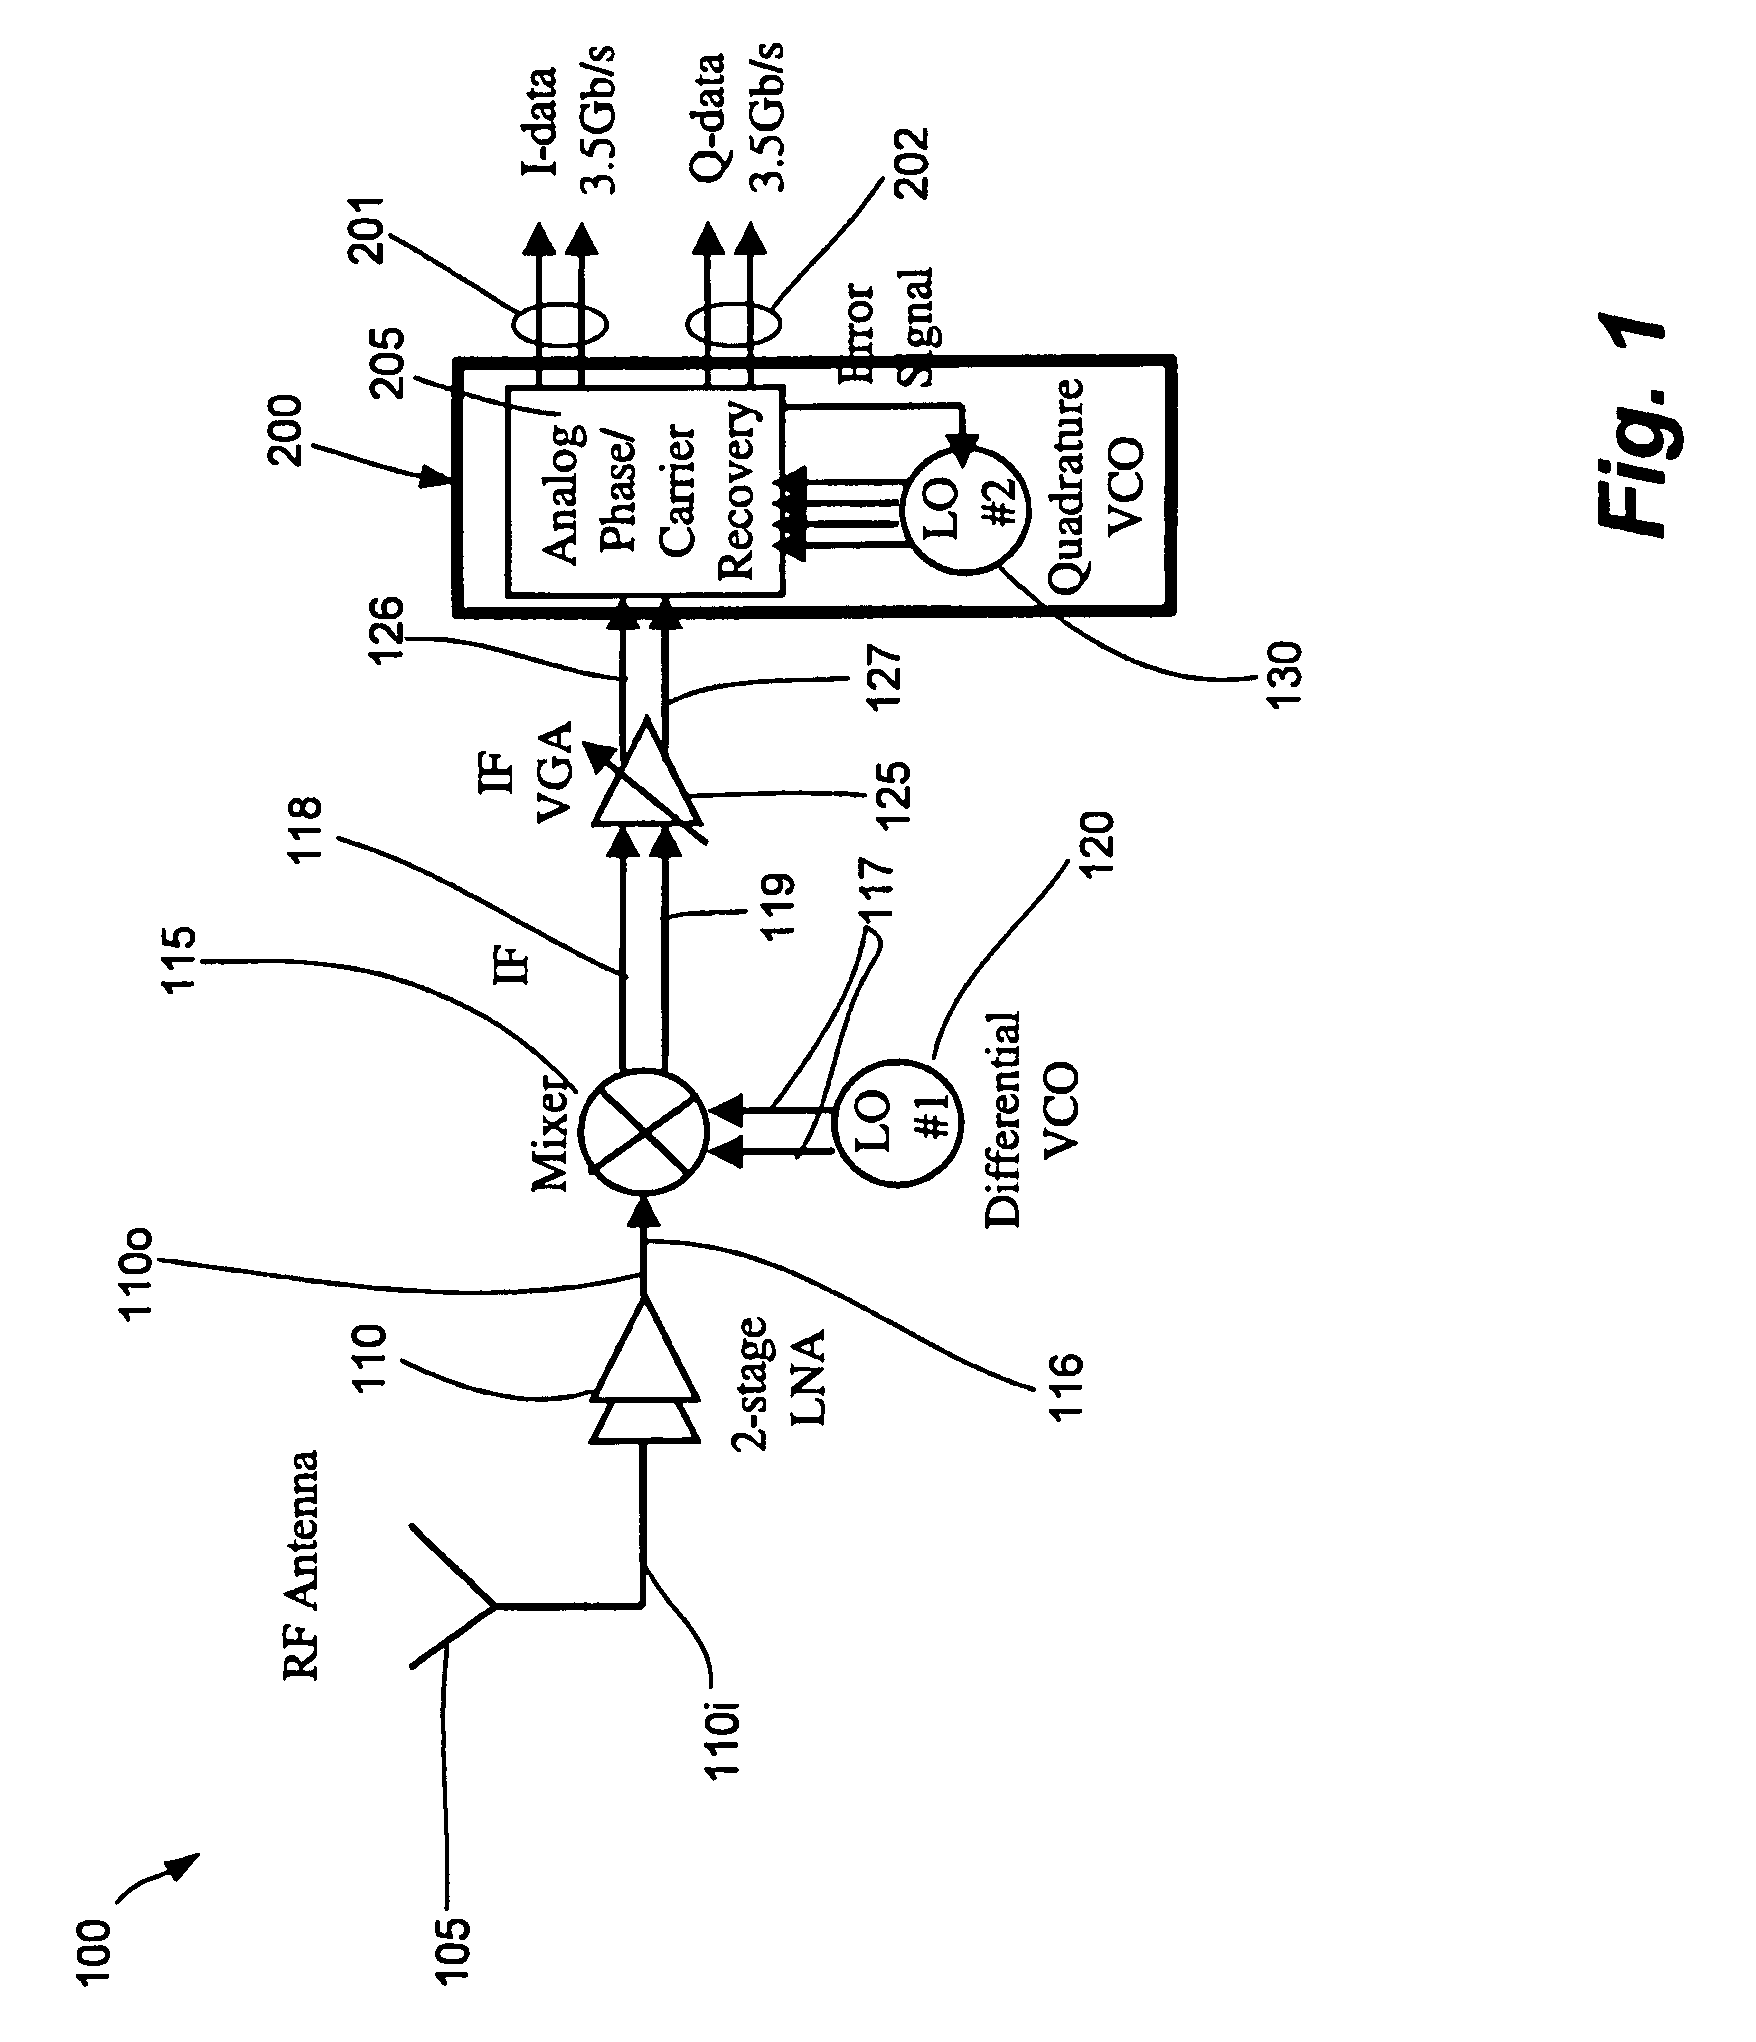 Patent Us8081948 Analog Signal Processor In A Multi Gigabit Oscillator With Quadrature Output Using 567 Ic Drawing